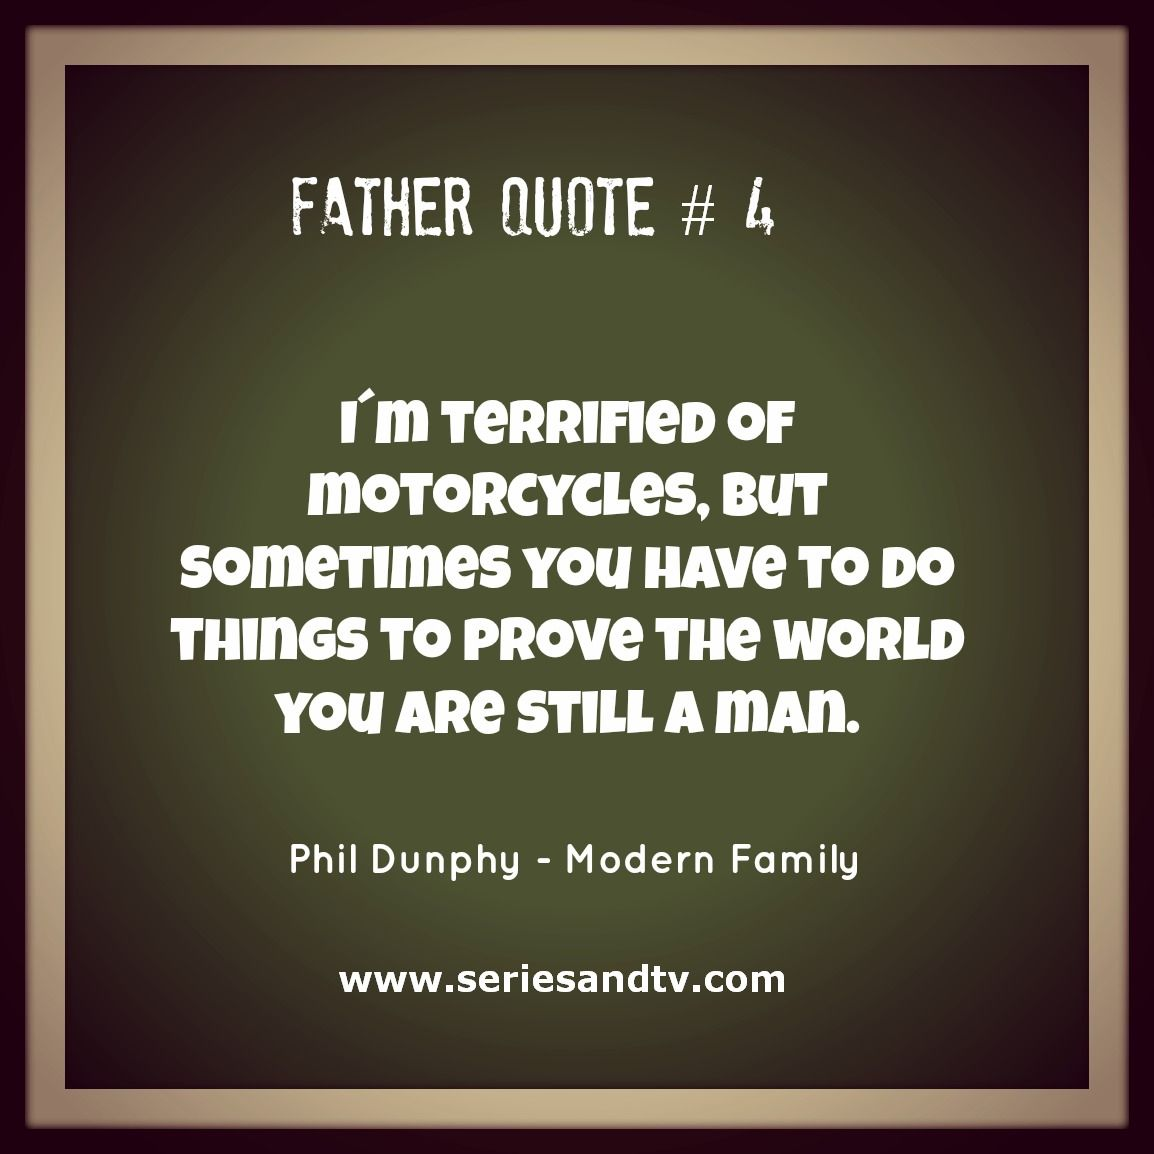 Funny Sales Quotes Fatherquote4Phildunphymodernfamily  Memes And Quotes